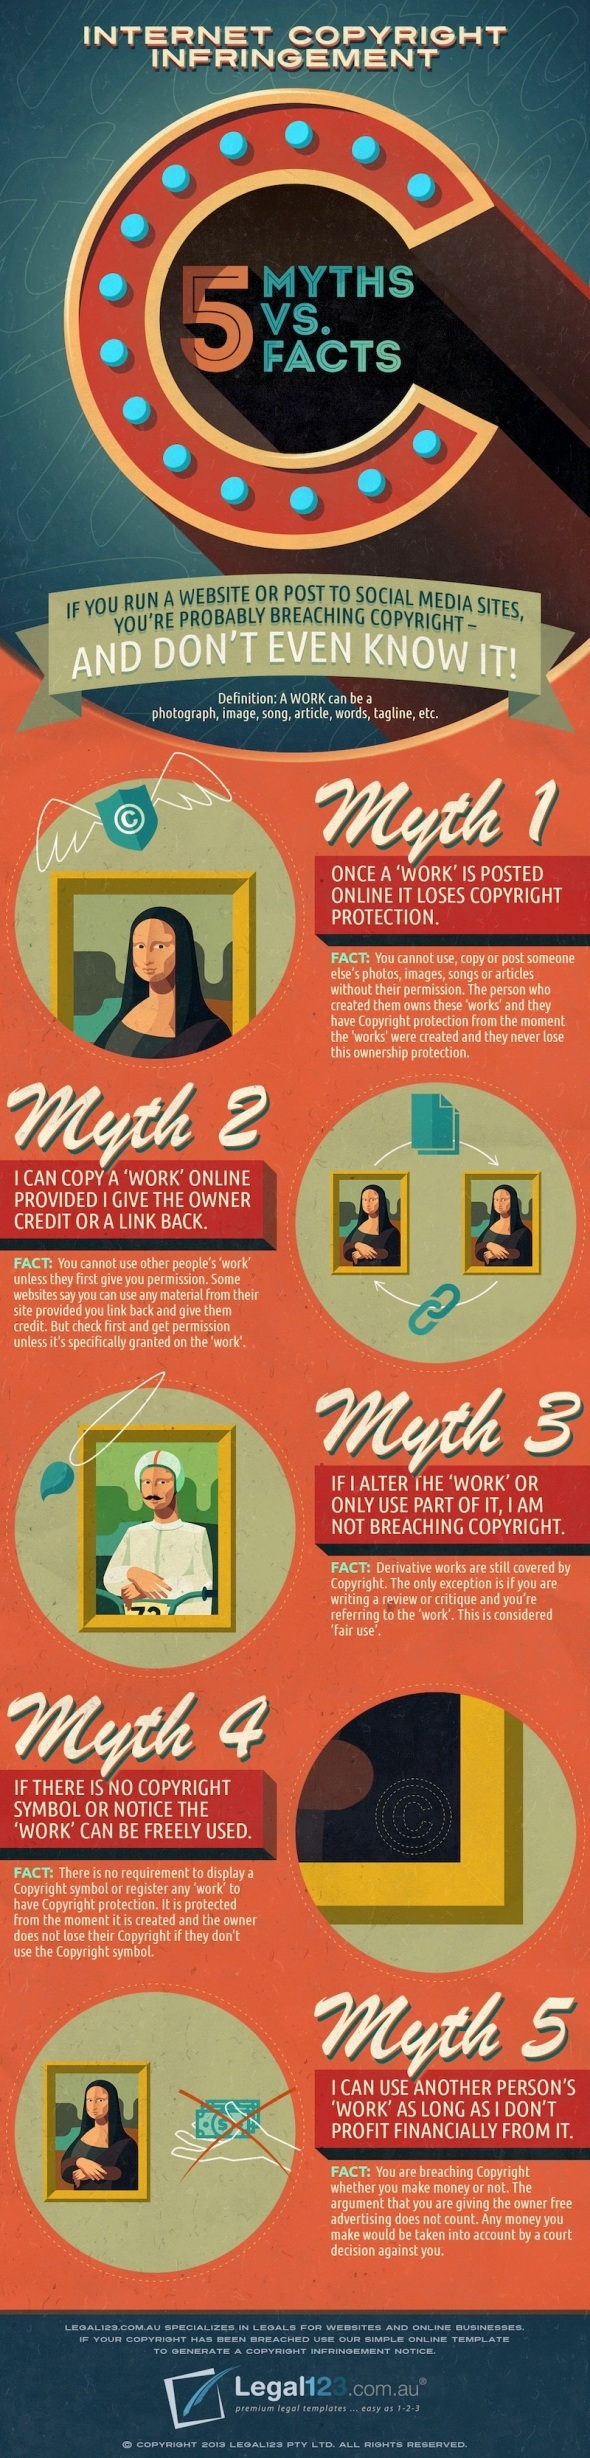 Myths-and-Facts-about-Copyright-Infringement-Infographic